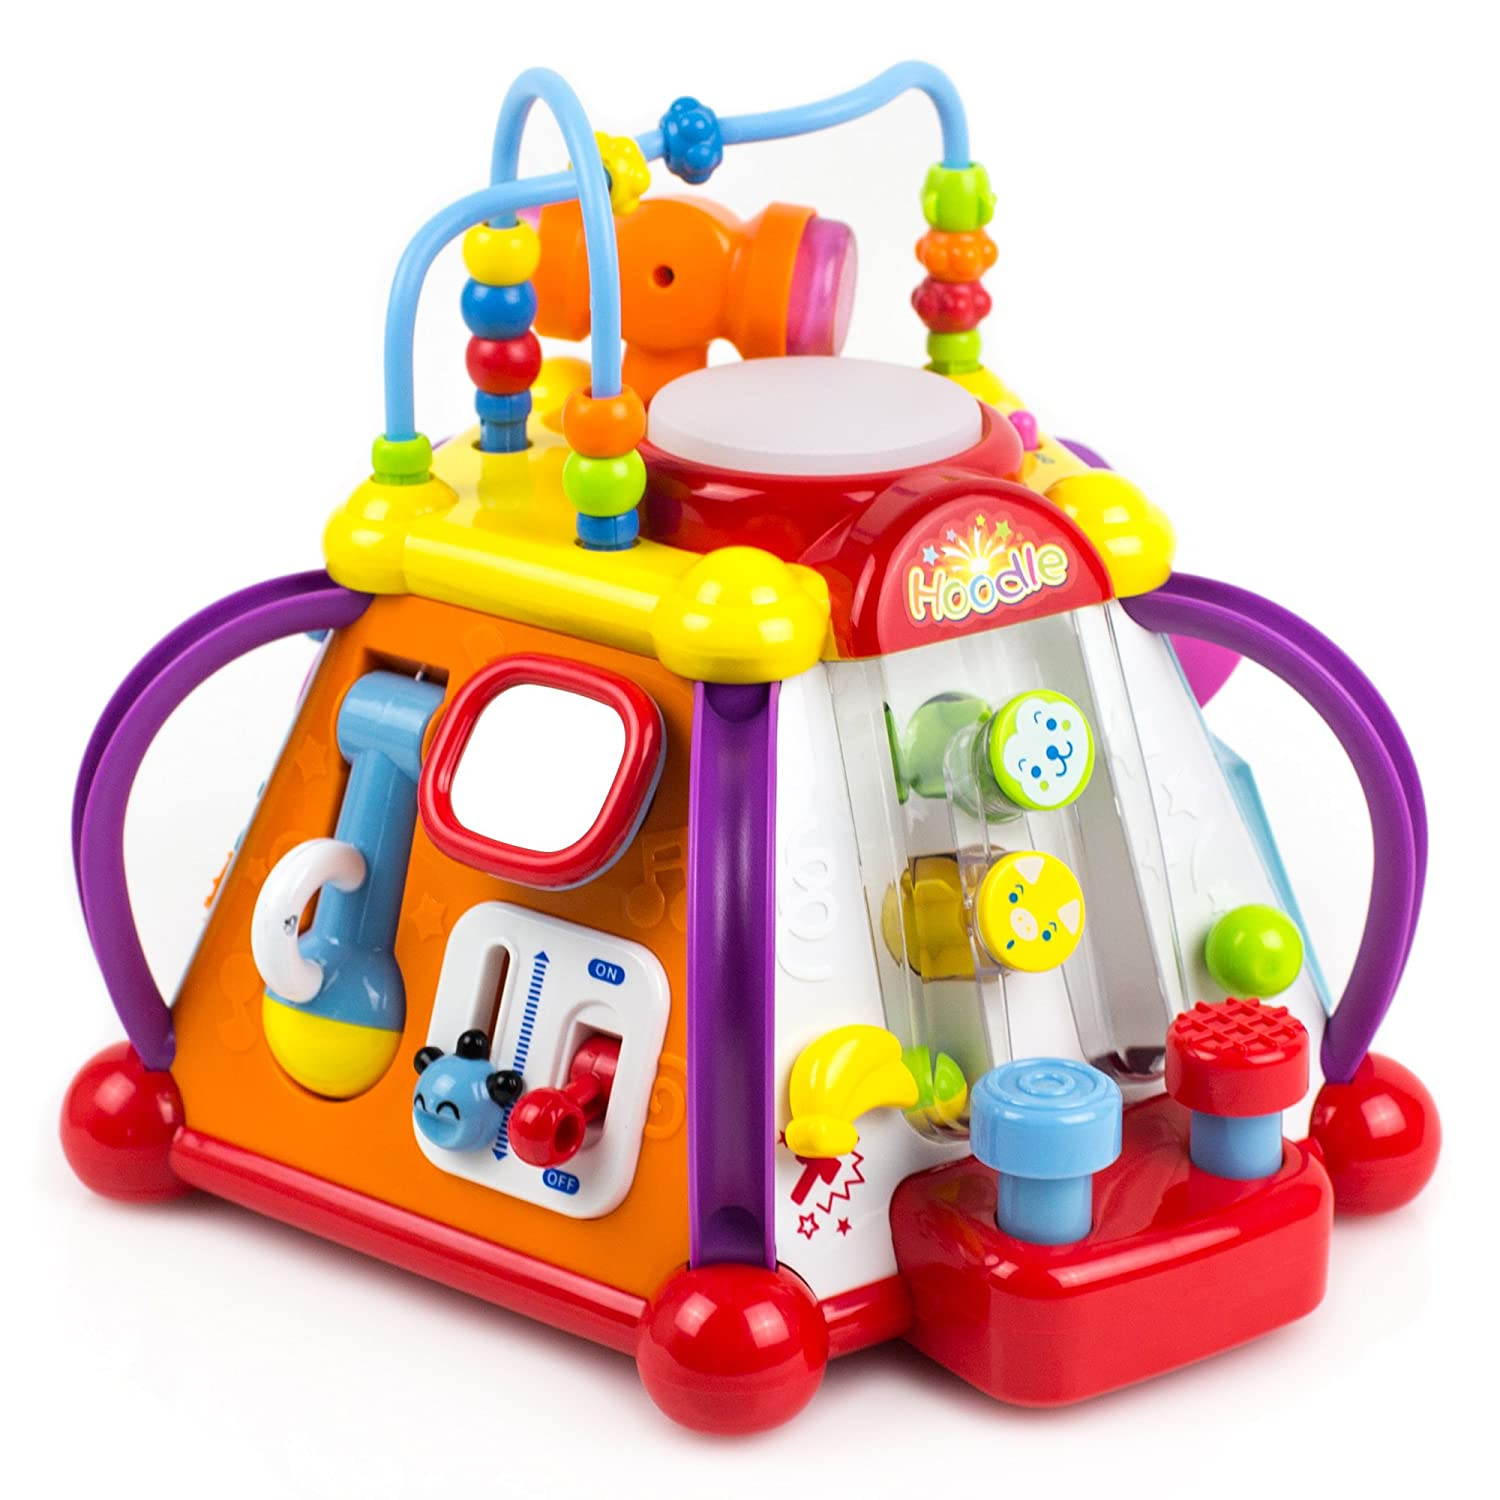 125f12da796eb Amazon.com  Toddler Baby Educational Kids Toy Musical Activity Cube Play  Center with Lights 15 Activities and 6 Sides Lights and Sounds  Toys   Games